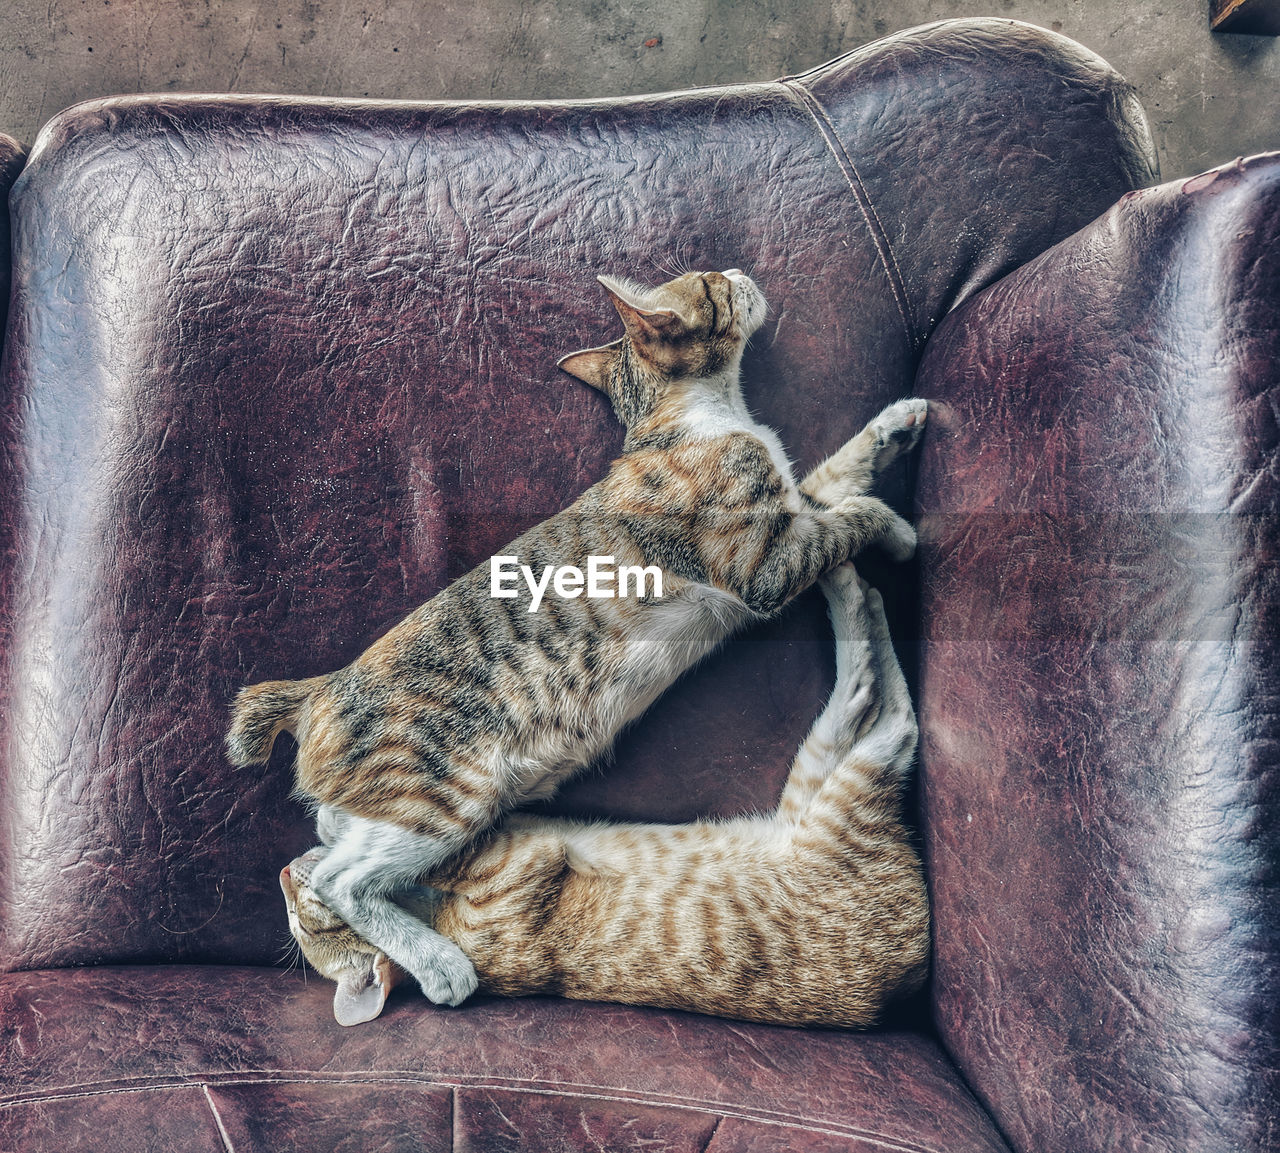 mammal, cat, animal themes, animal, feline, domestic animals, domestic cat, domestic, pets, vertebrate, relaxation, one animal, indoors, no people, sleeping, high angle view, resting, furniture, whisker, tabby, animal family